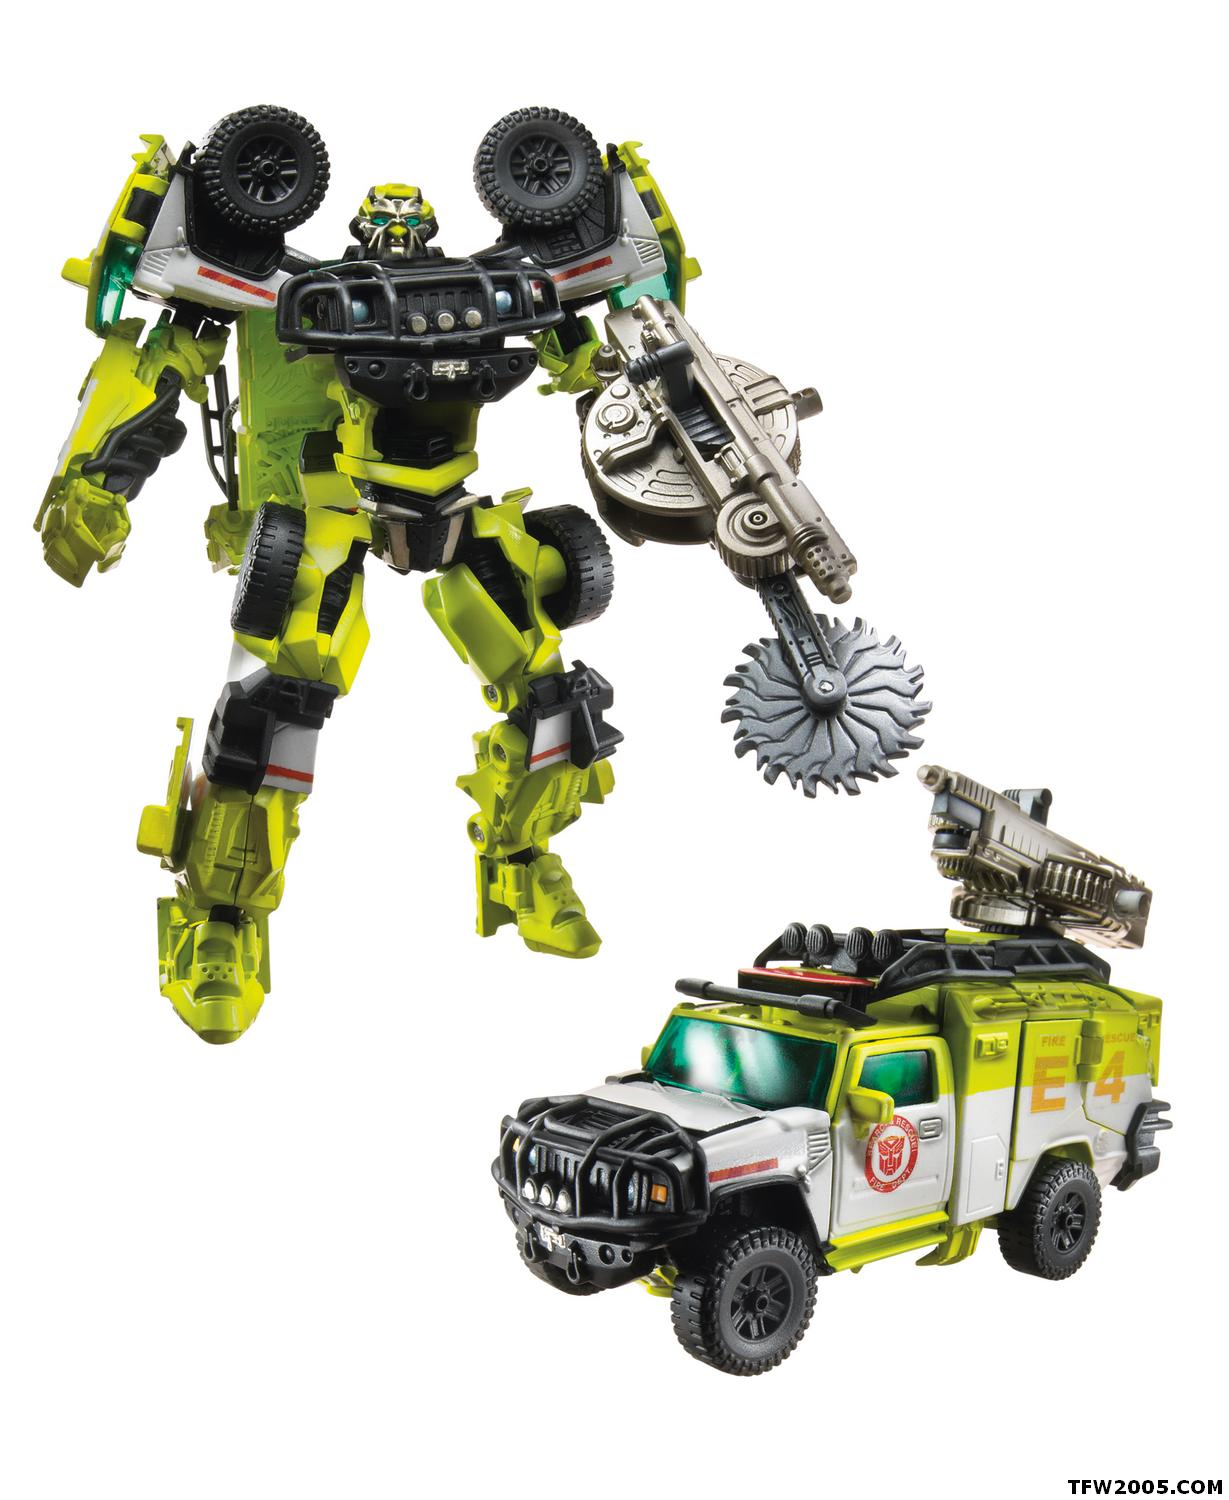 Autobot Ratchet (Deluxe) MECTECH-DELUXE-RATCHET-both-modes-28740